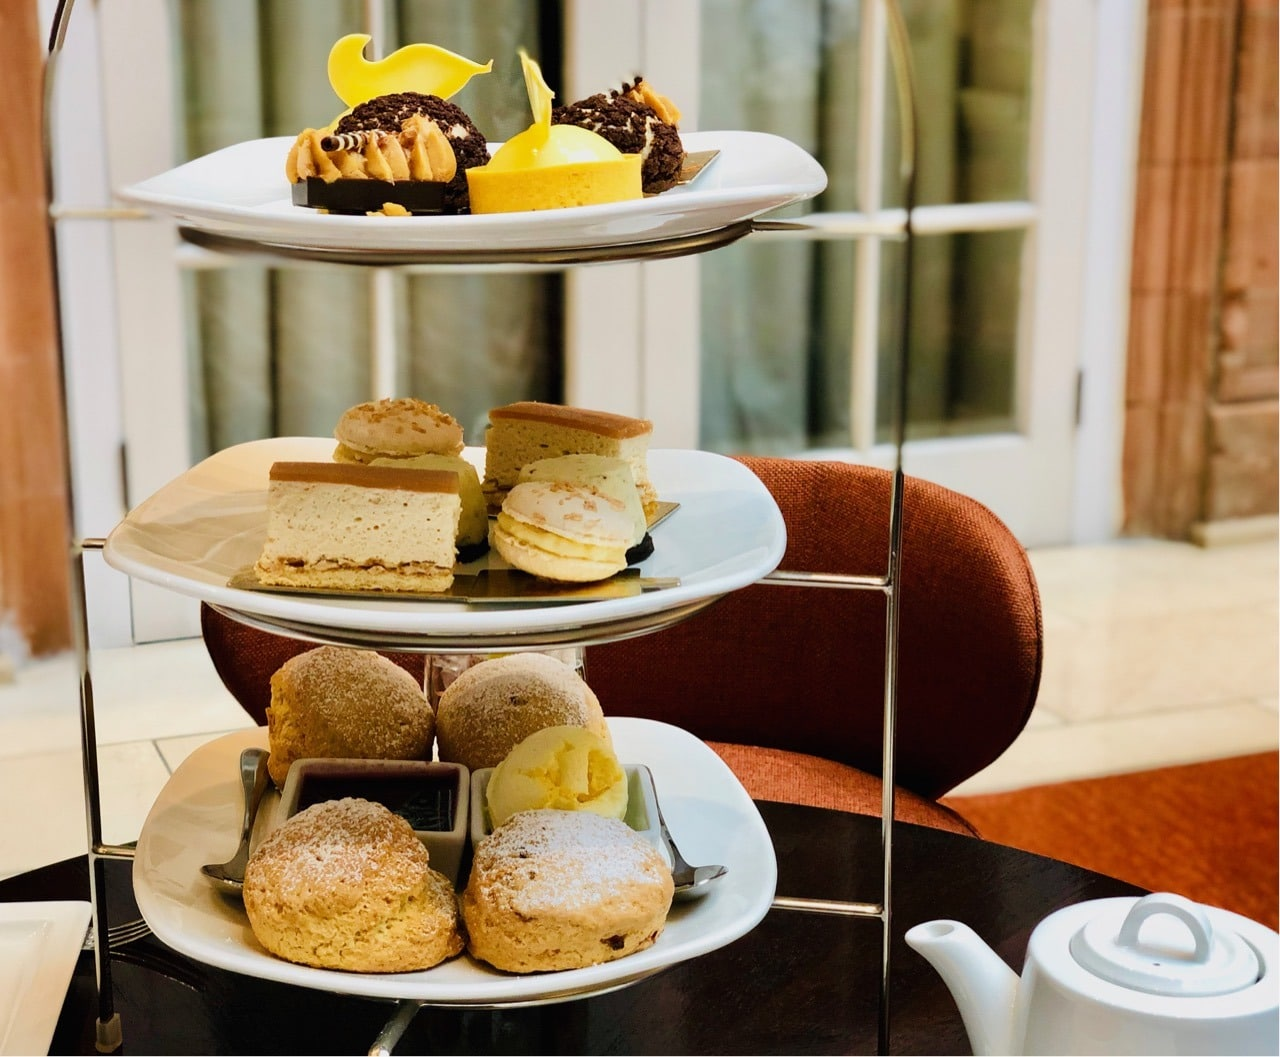 Review Afternoon Tea Cakes and Scones Peacock Alley Waldorf Astoria Edinburgh